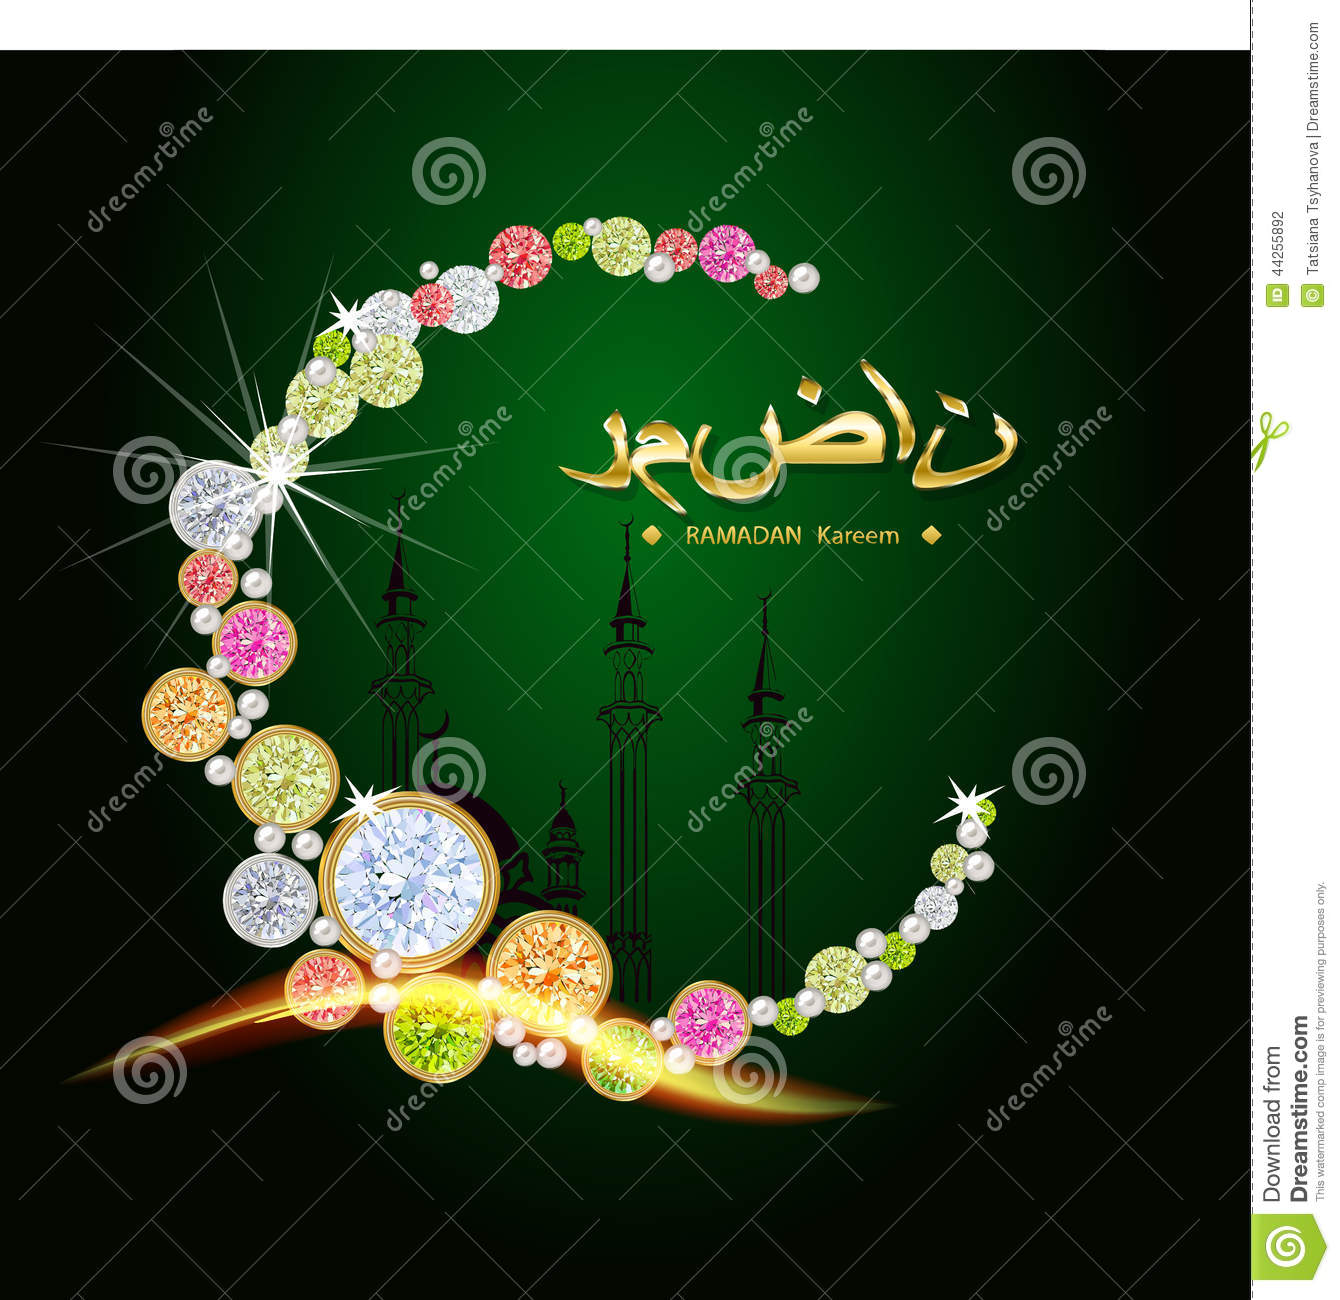 Wonderful Board Eid Al-Fitr Decorations - eid-ul-fitr-eid-mubarak-greeting-card-arabic-pattern-decorated-light-beige-background-mosque-morning-nature-background-holy-44255892  Snapshot_331965 .jpg